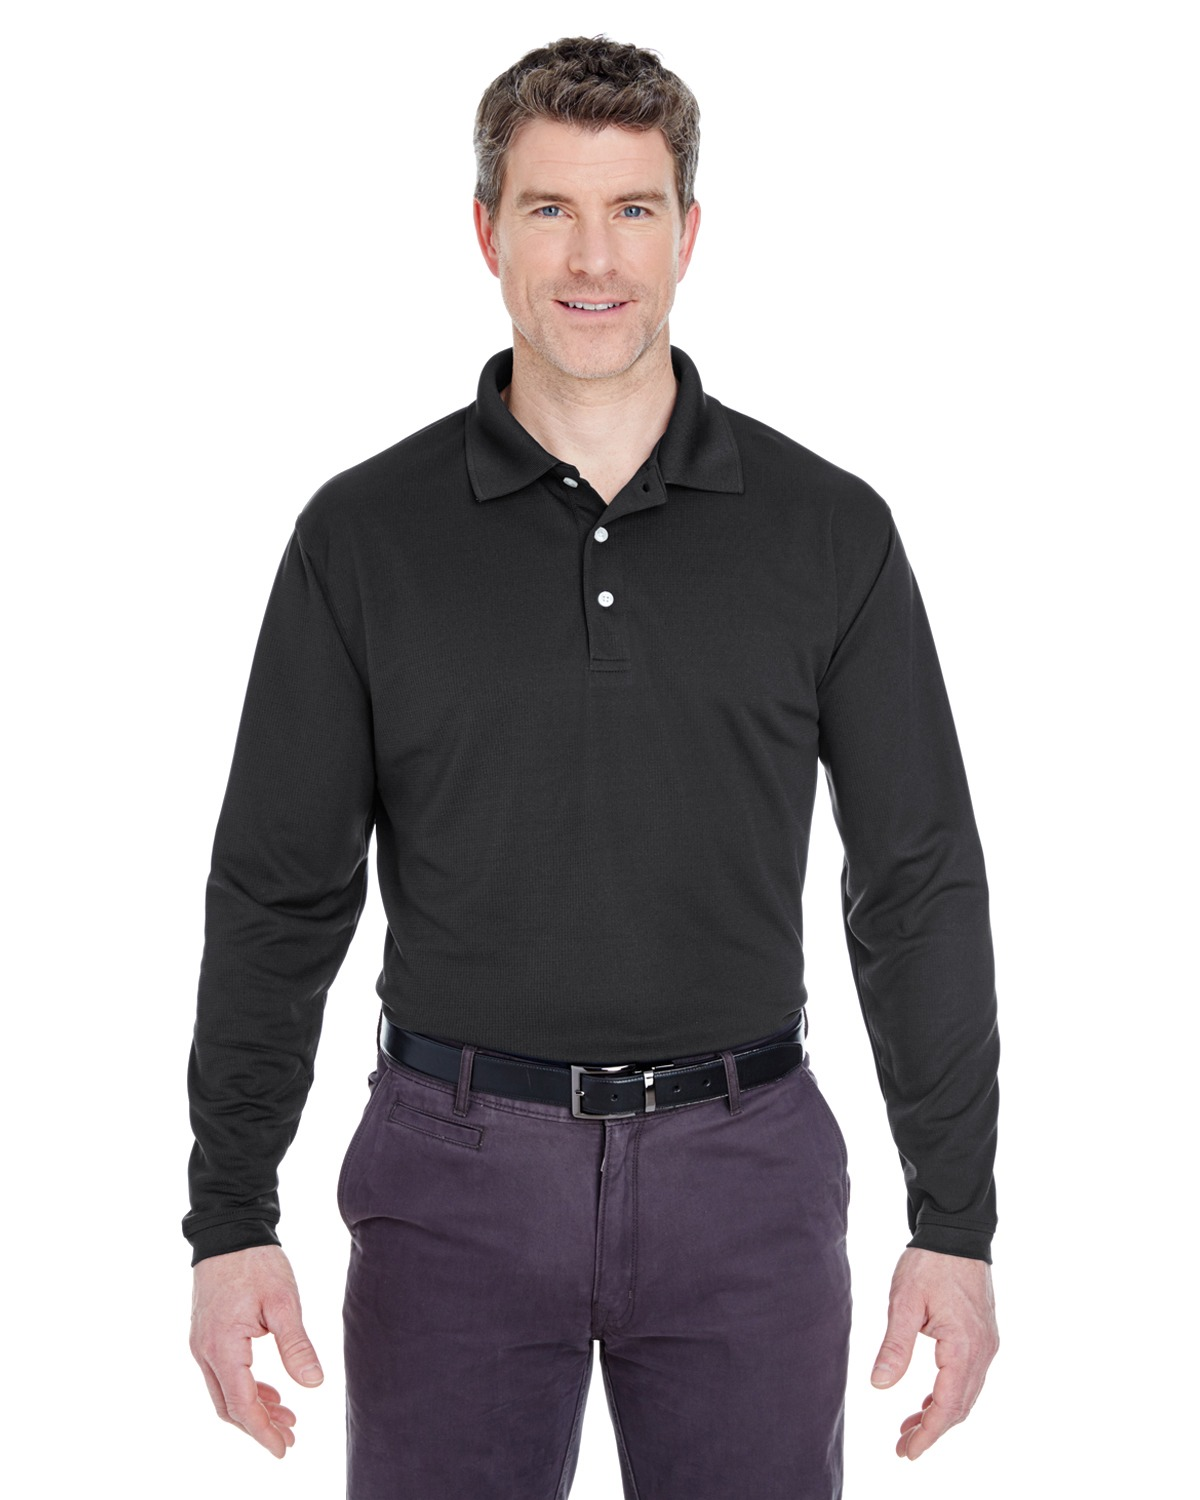 UltraClub 8445LS Men's Cool & Dry Long-Sleeve Stain-Release Performance Polo at GotApparel